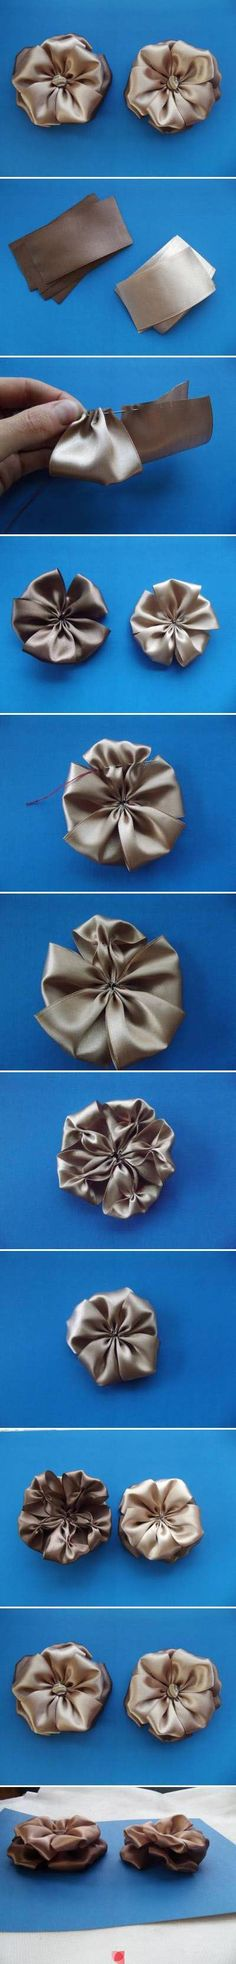 Ribbon flower photo tutorial